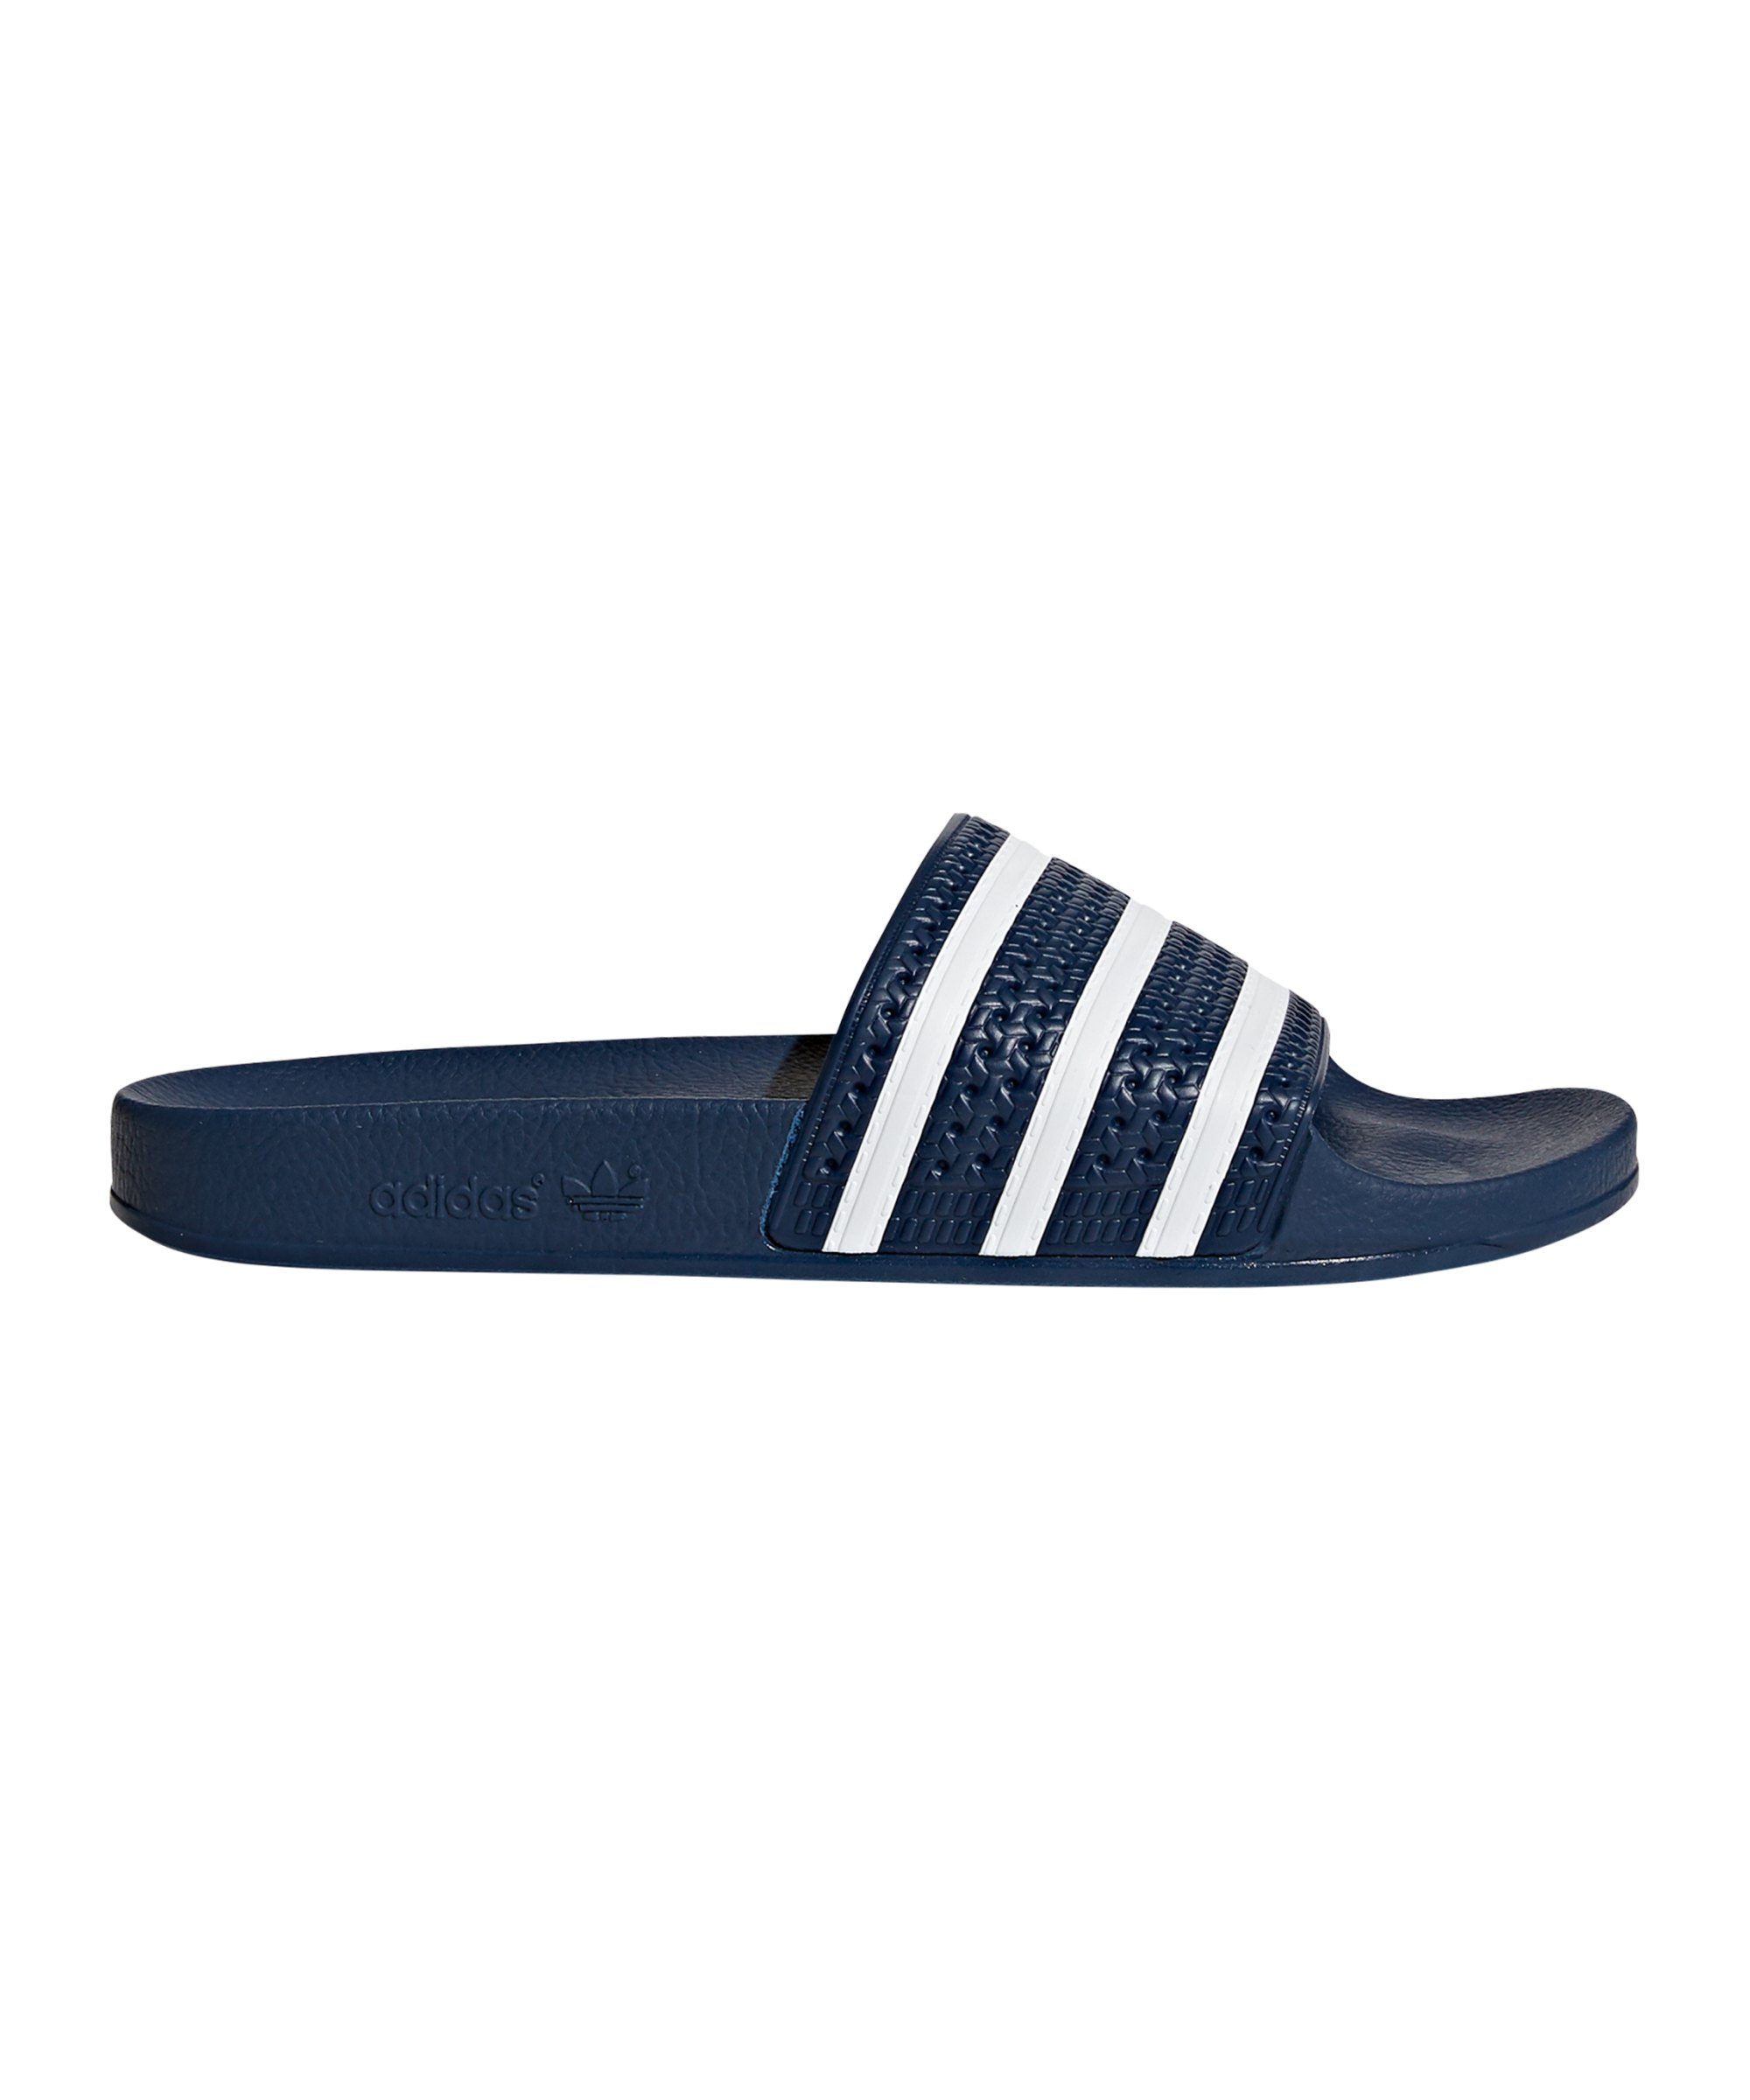 adidas originals adilette blau weiss blau. Black Bedroom Furniture Sets. Home Design Ideas